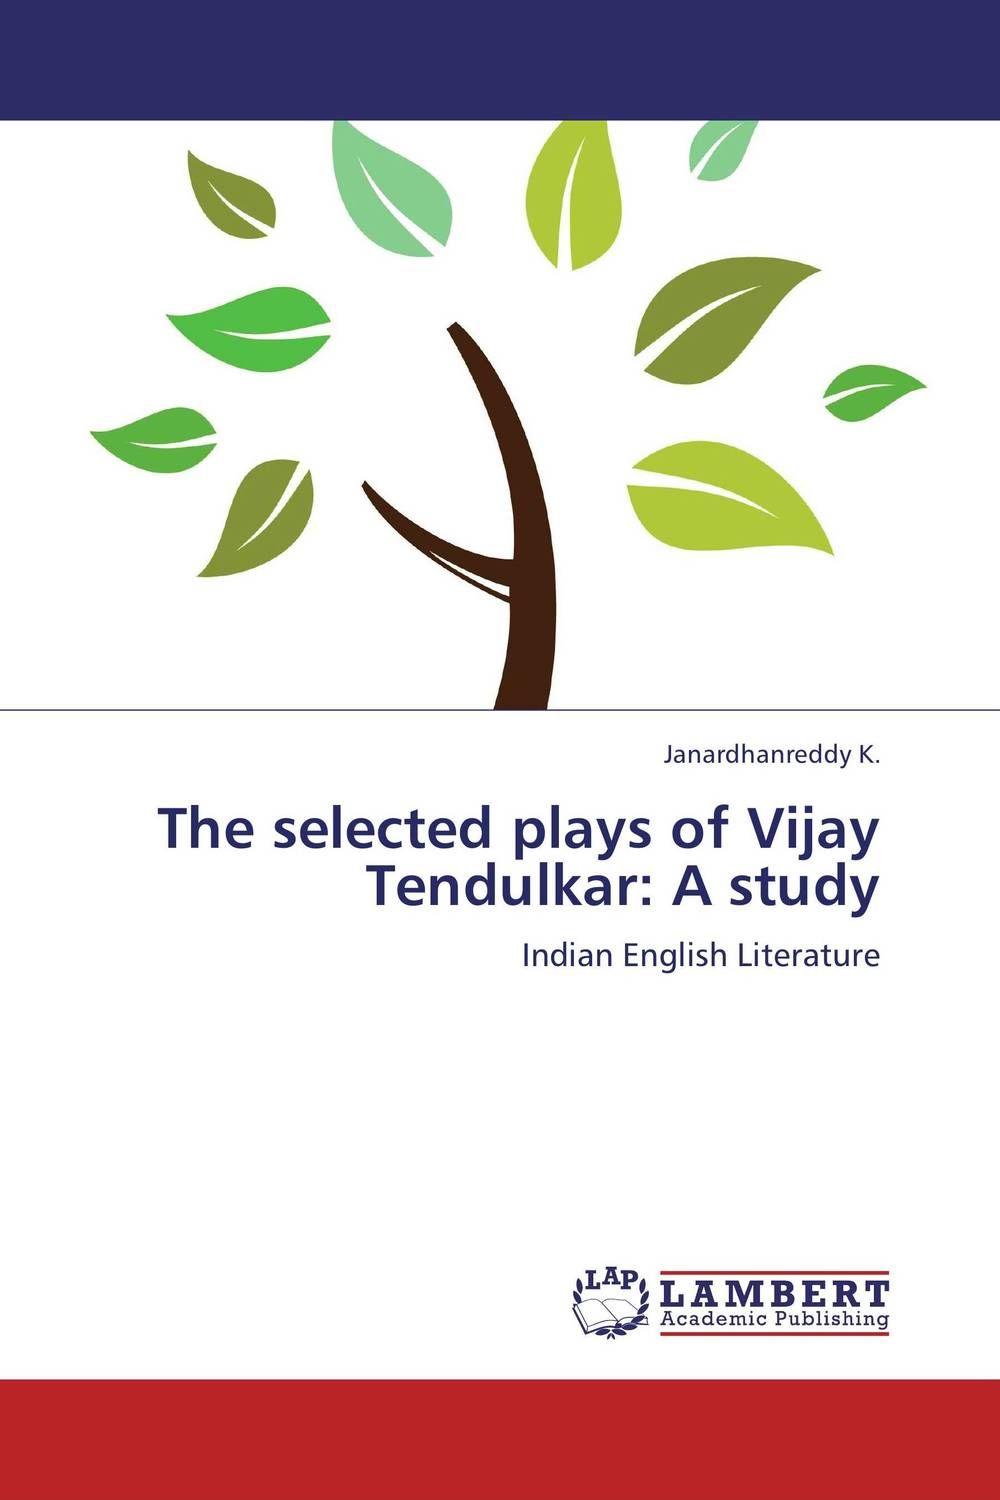 The selected plays of Vijay Tendulkar: A study a stylistic study of the language of selected greeting cards